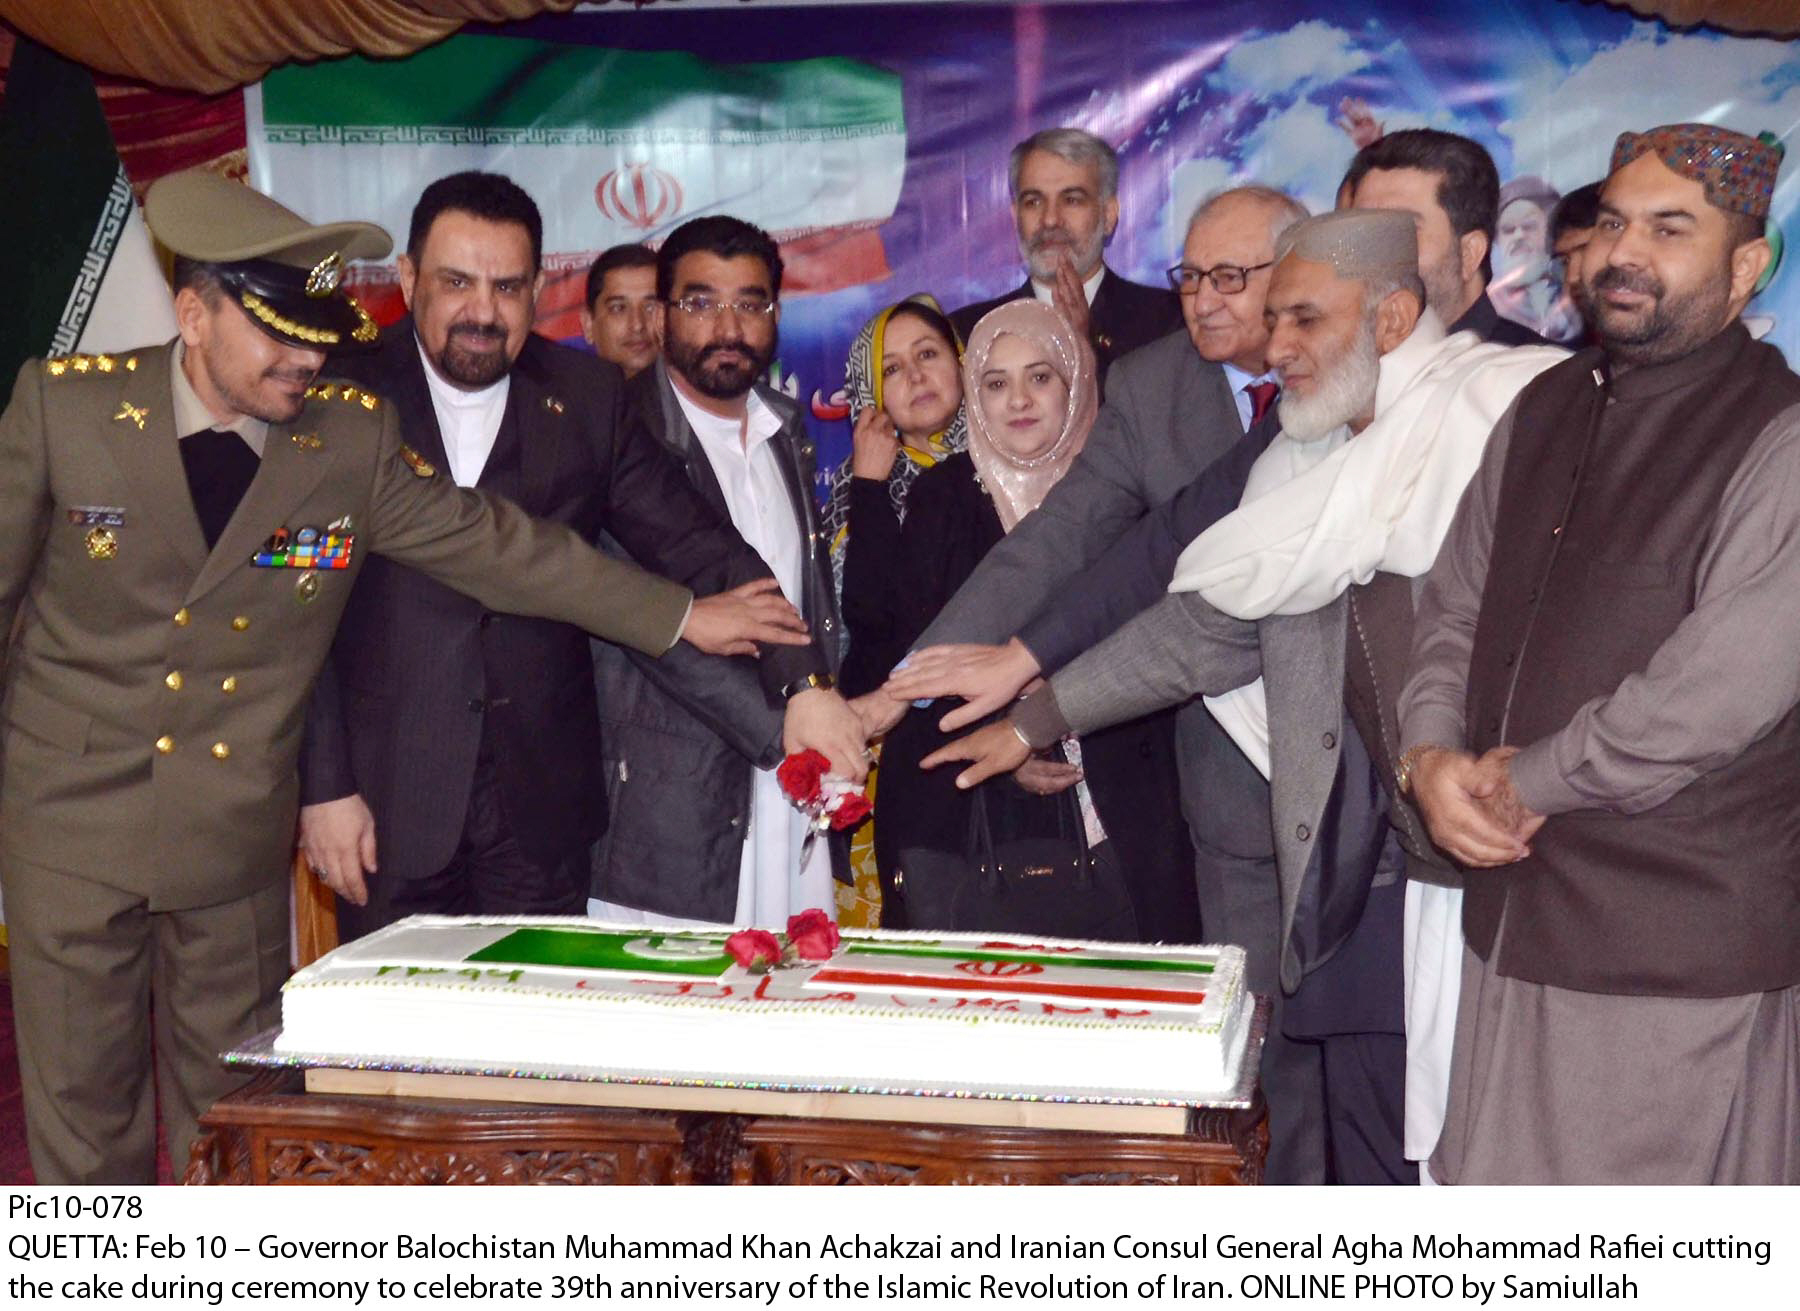 balochistan governor mohammad khan achakzai and iranian consul general agha mohammad rafiei along with others cut a cake during a ceremony to celebrate the 39th anniversary of the islamic revolution in iran photo online